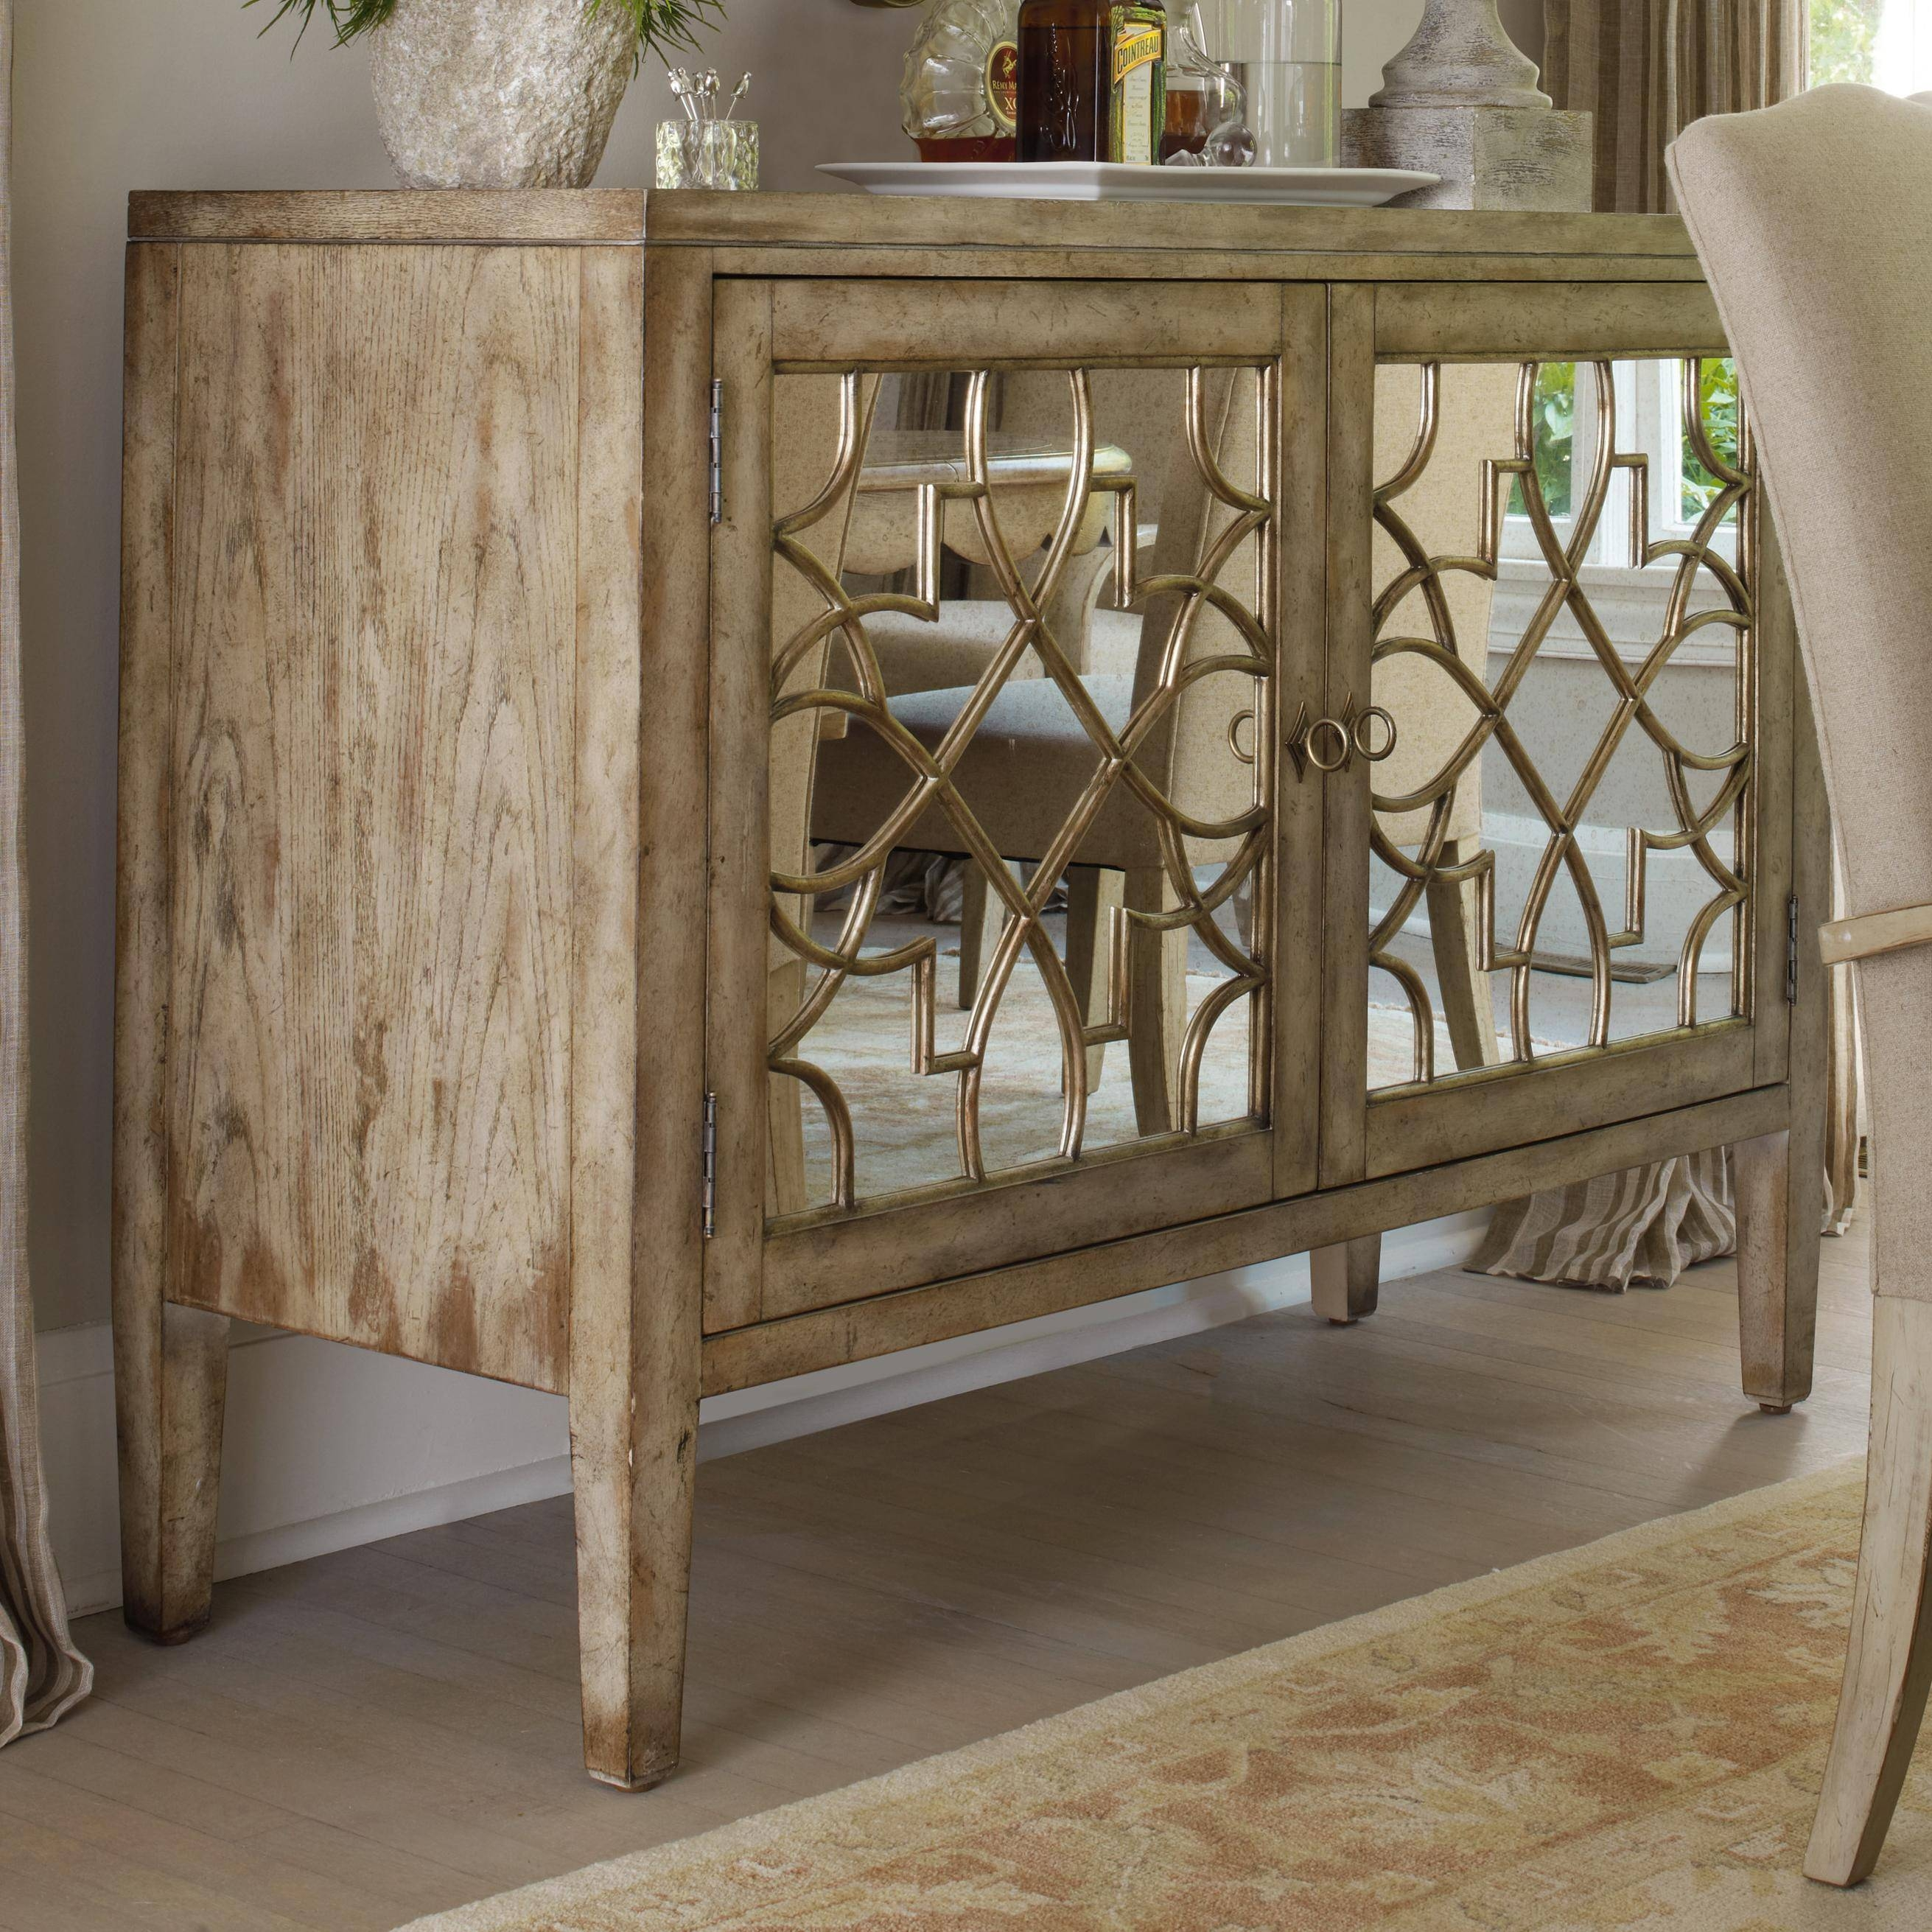 Hooker Furniture Sanctuary Two Door Mirrored Console – Belfort In Mirrored Sideboard Furniture (View 14 of 20)